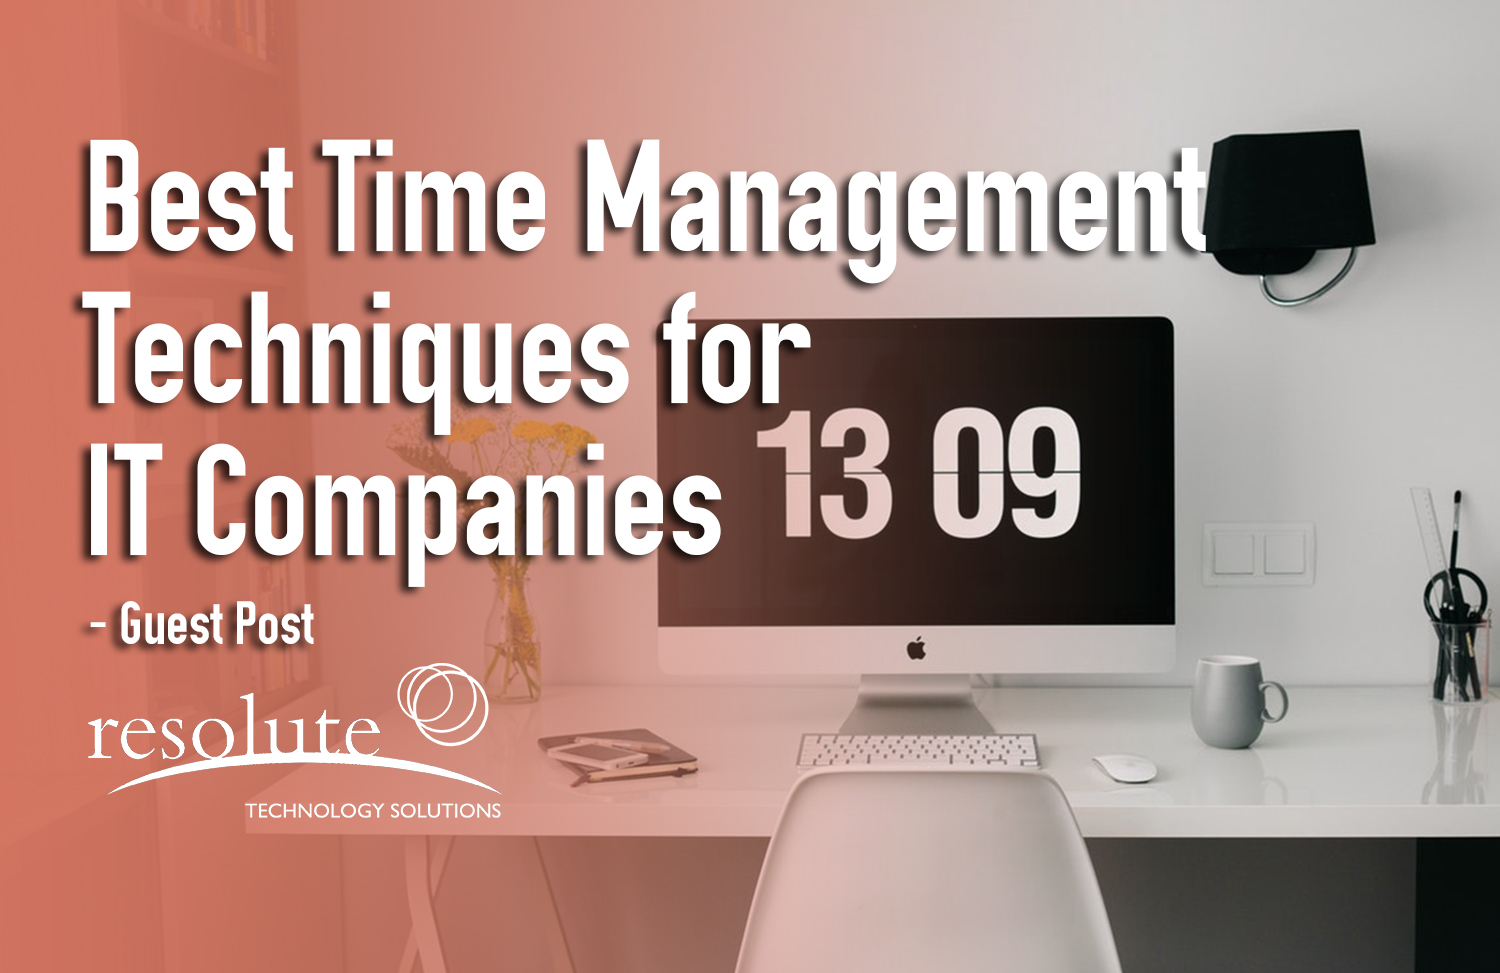 Best Time Management Techniques for IT Companies